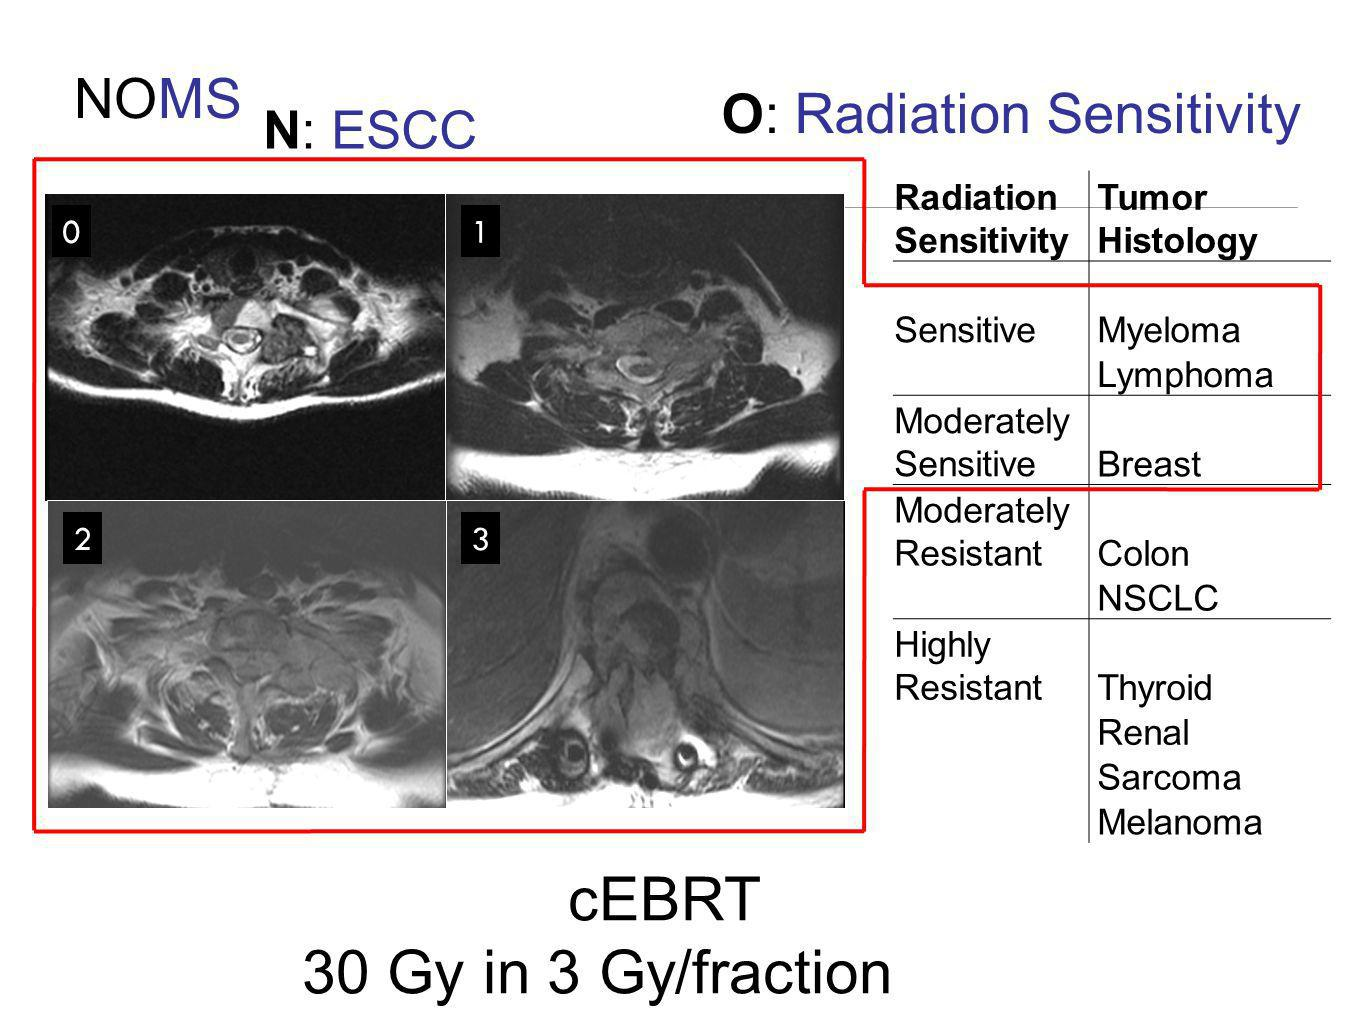 O: Radiation Sensitivity